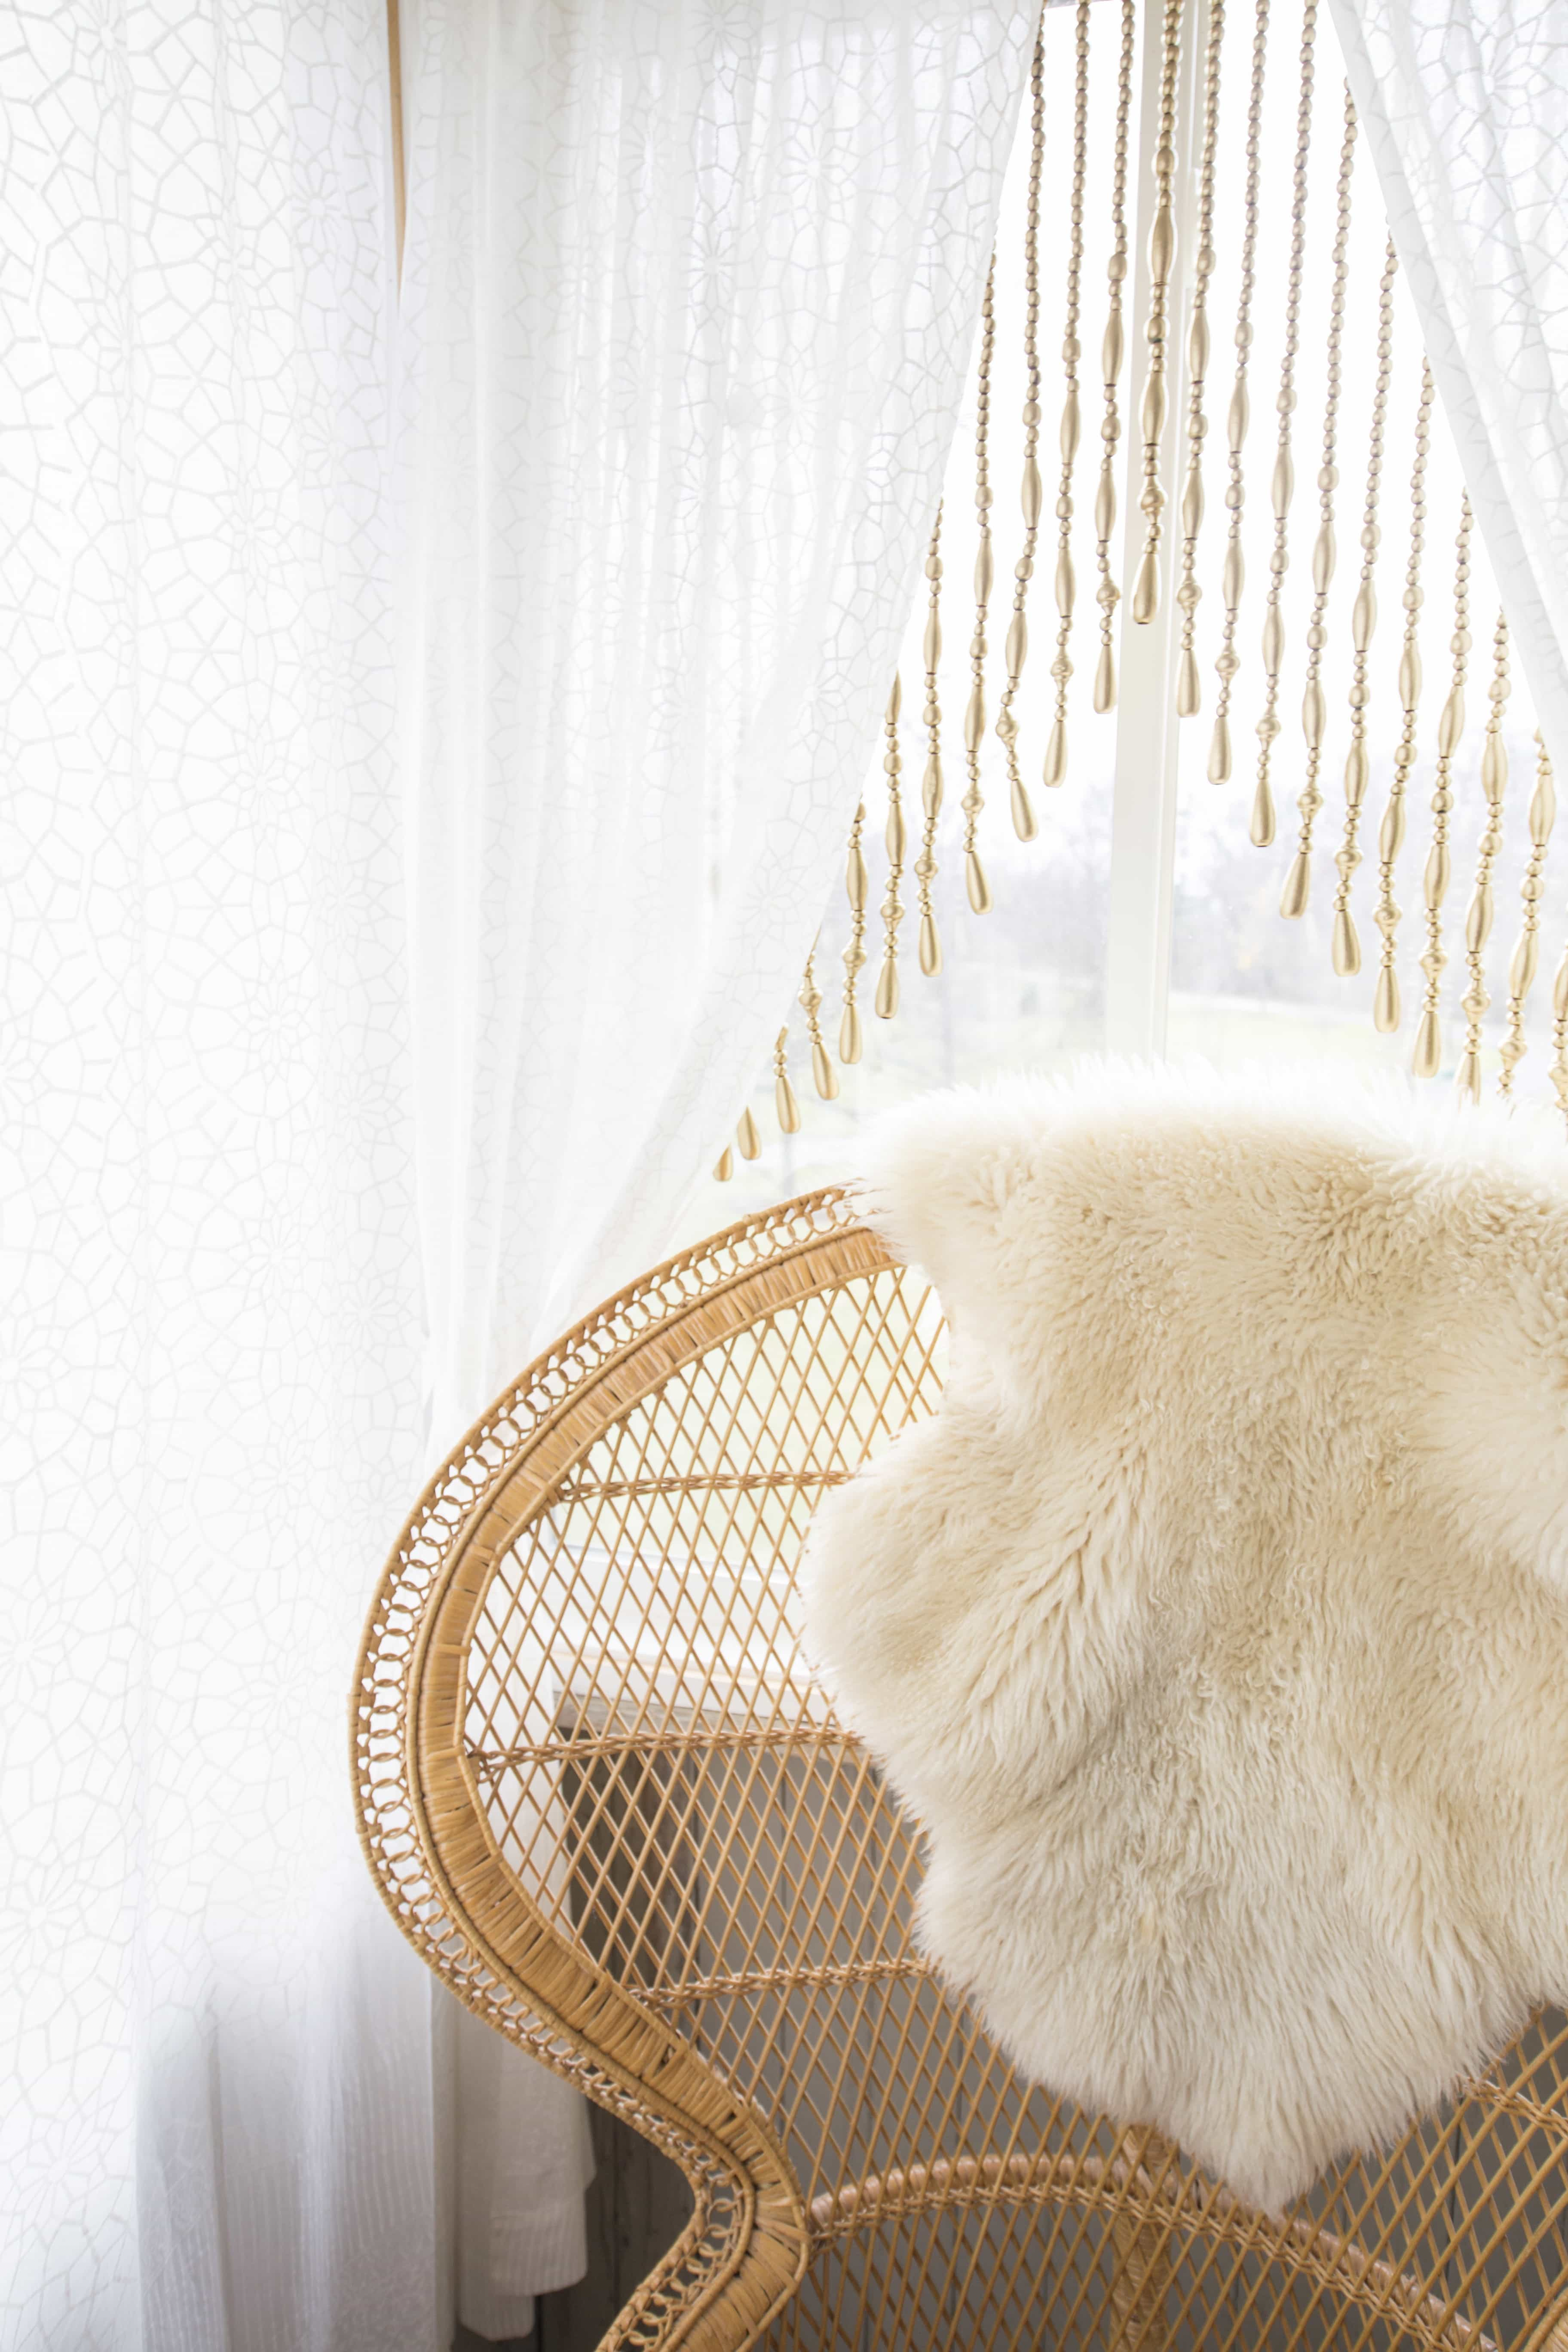 Fur Decorative Throw And White Curtains With Beaded Fringe (View 10 of 23)